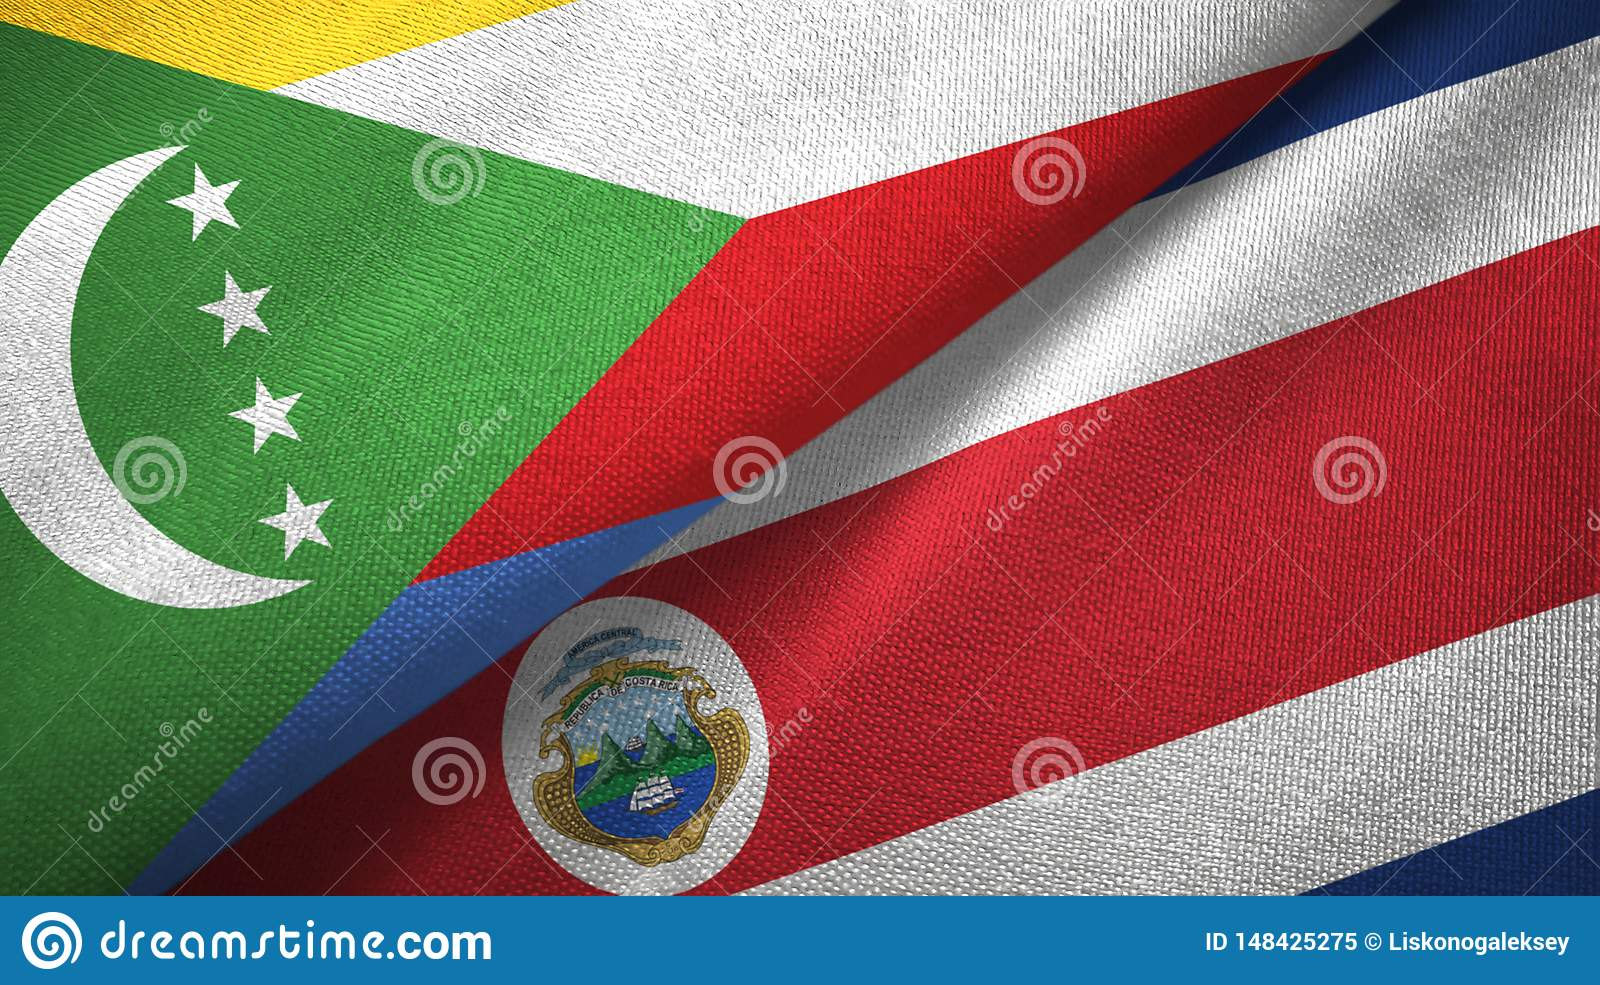 Comoros and Costa Rica two flags textile cloth, fabric texture